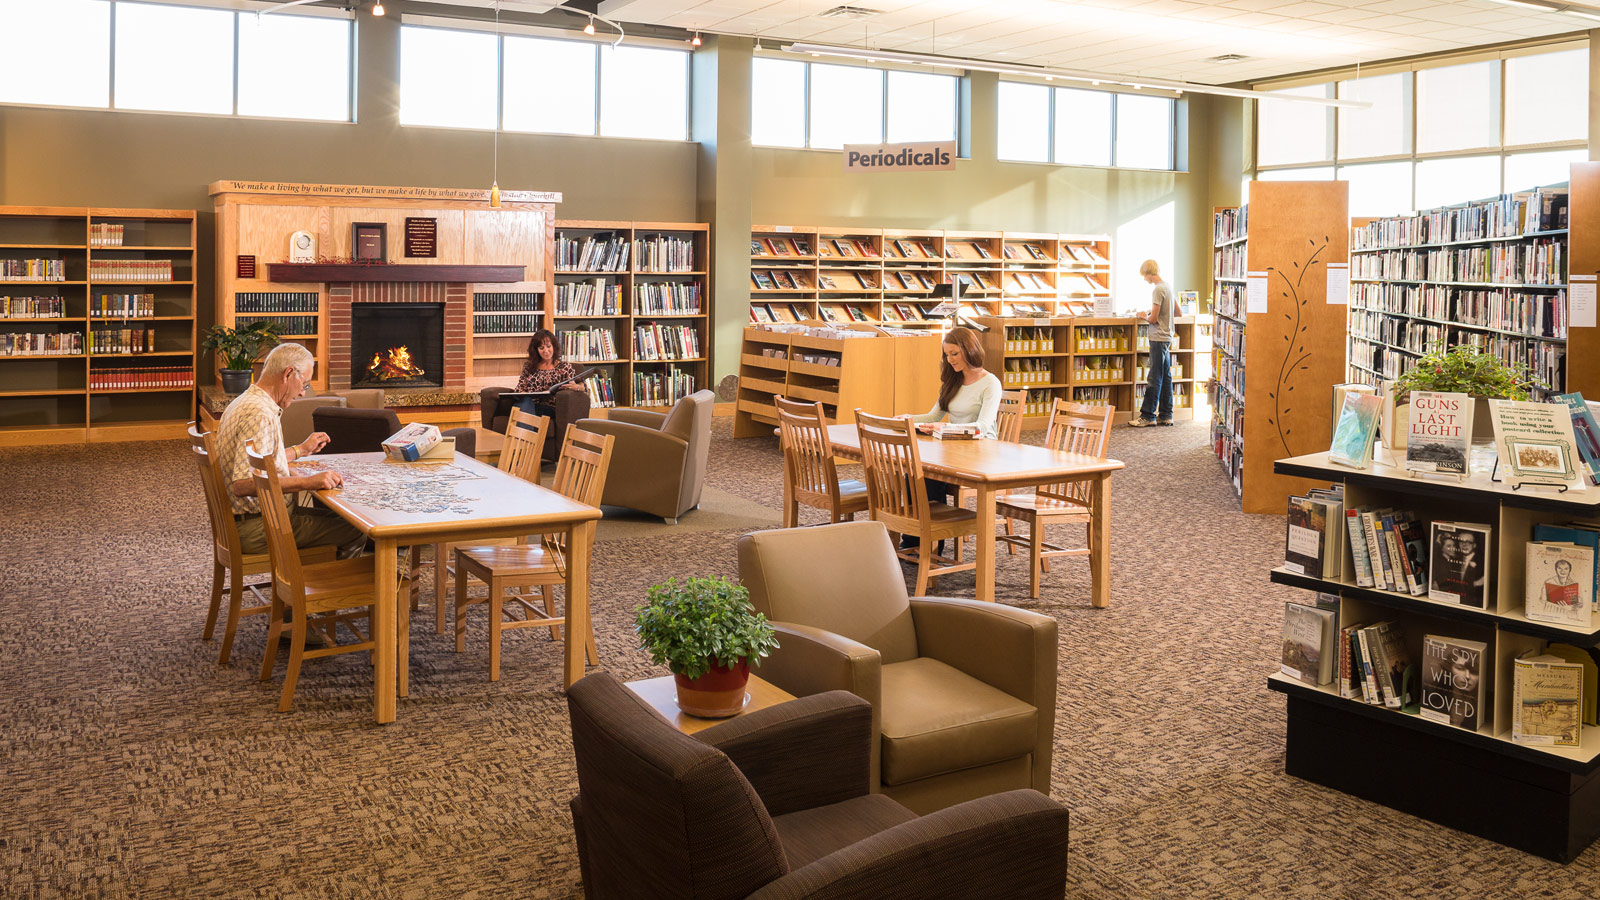 Marshall-Lyon County Library and Children's Wing Addition